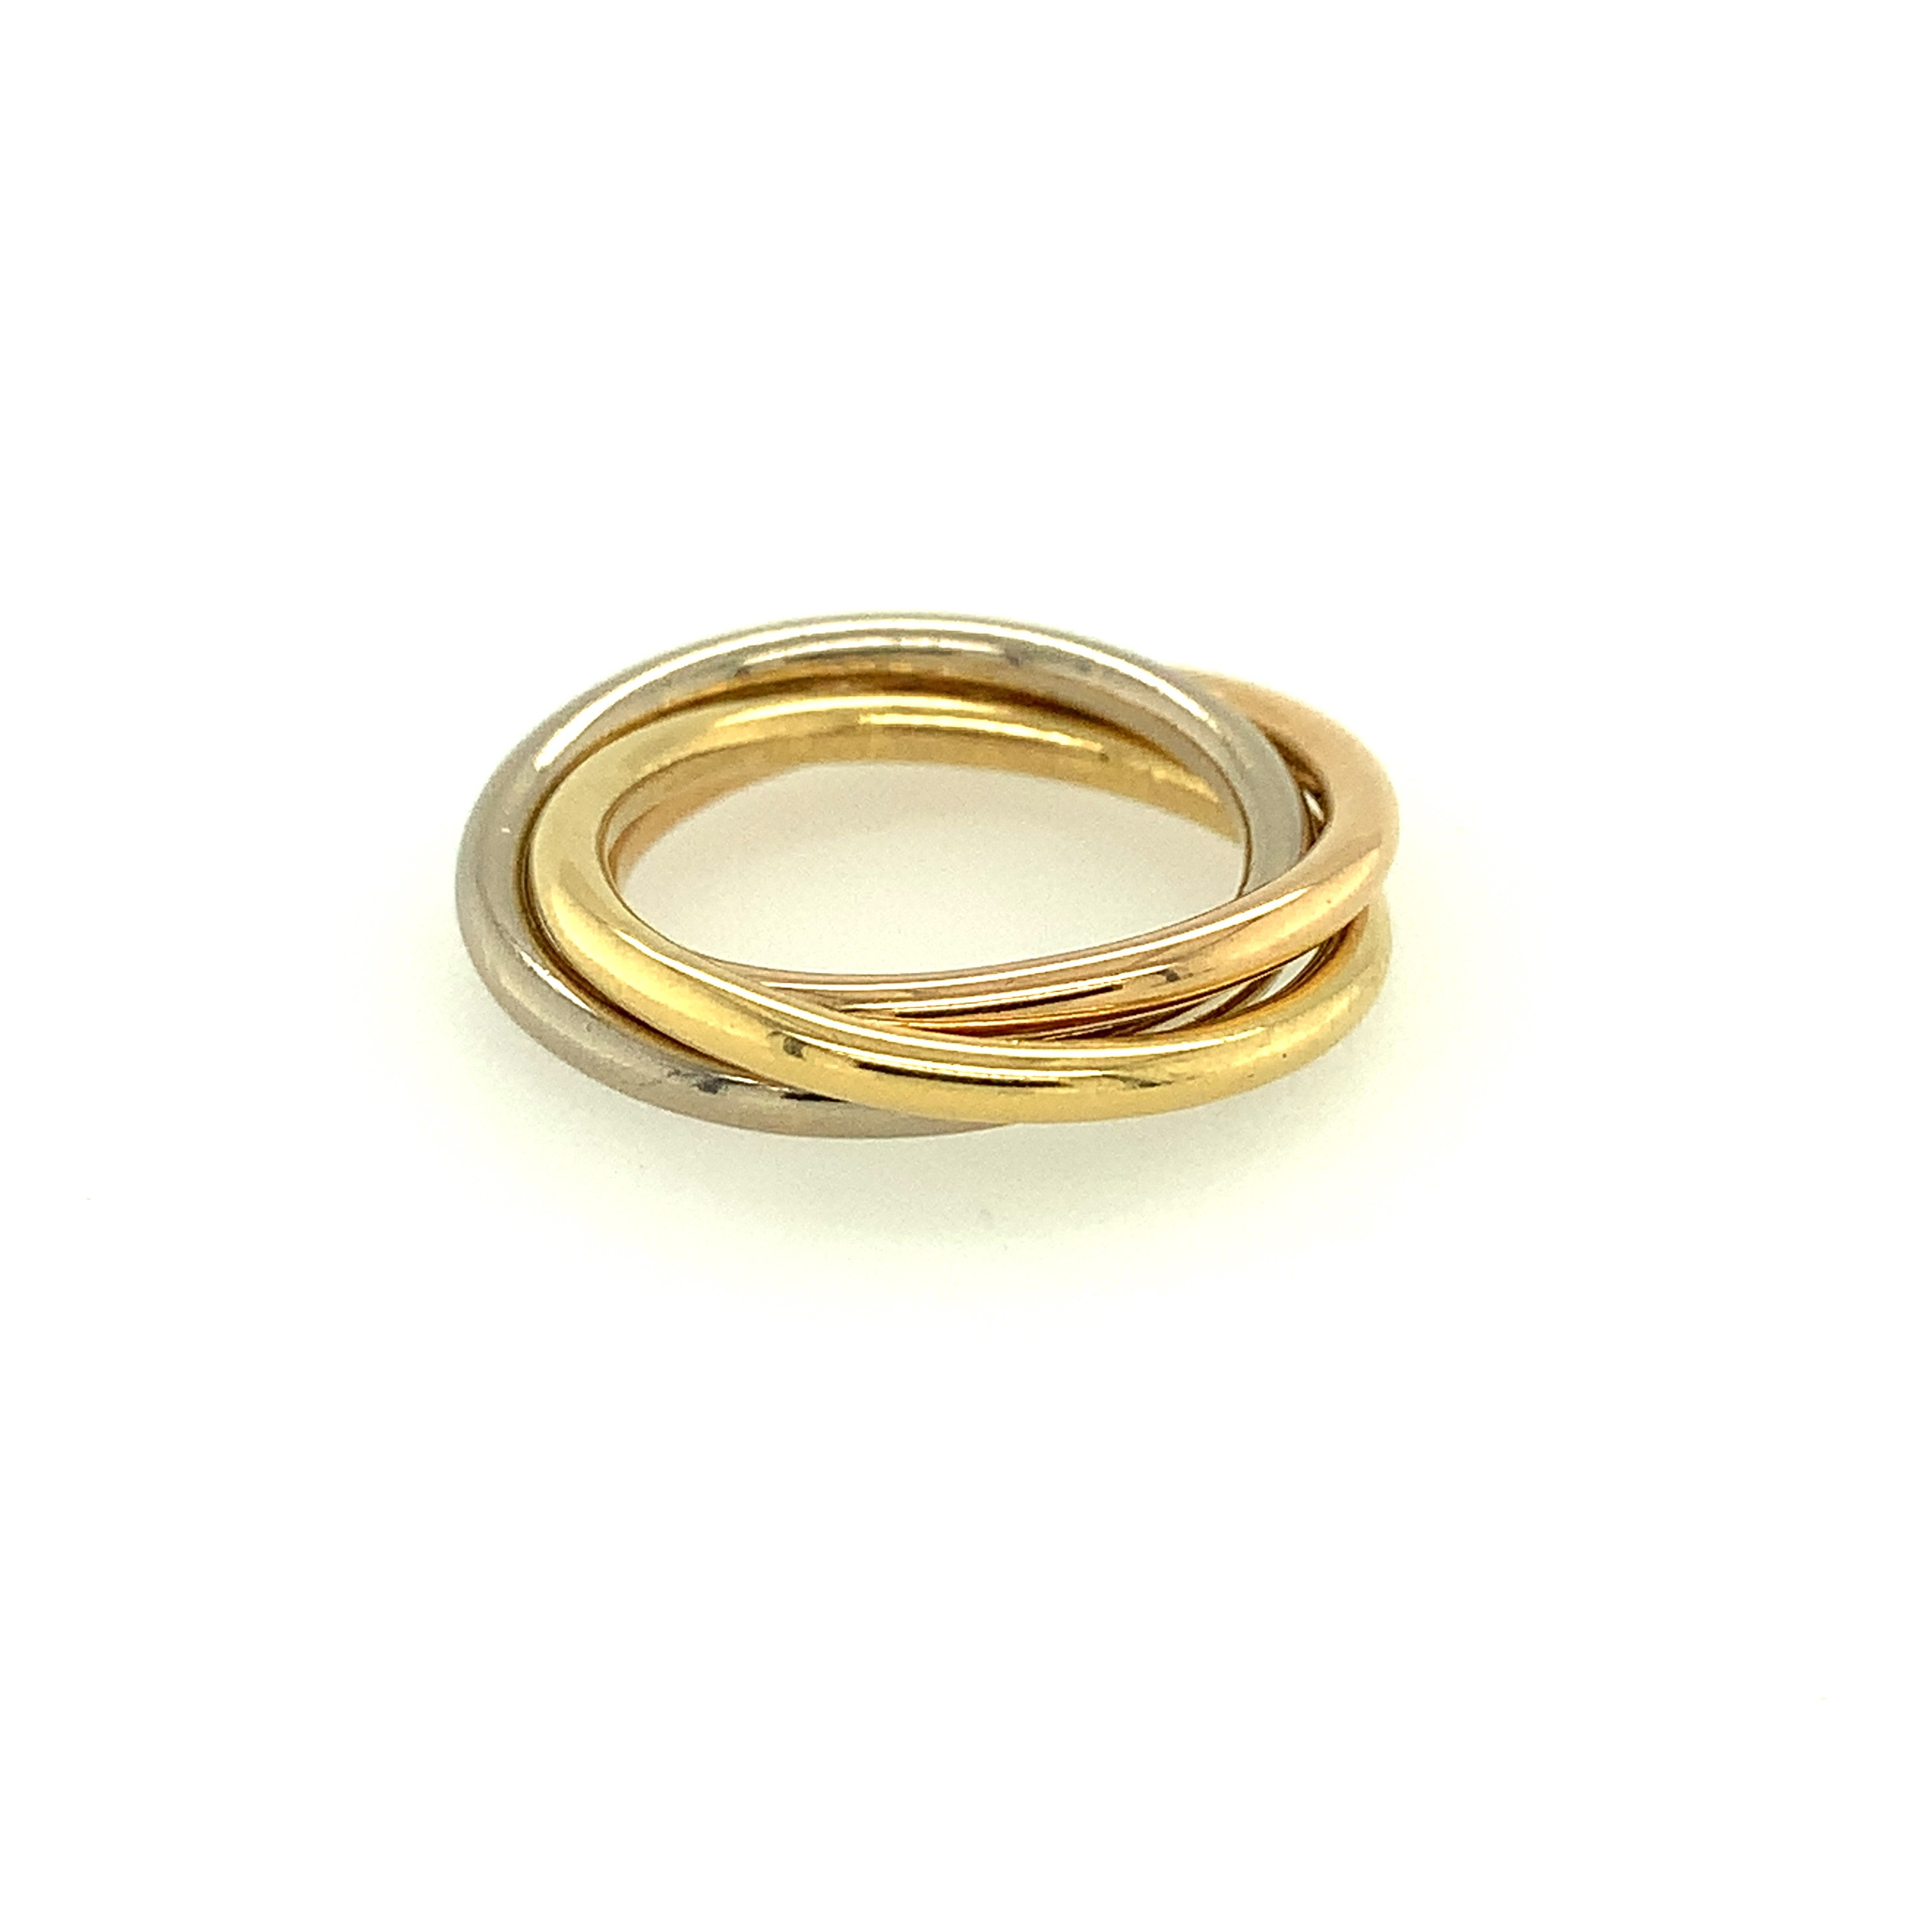 18ct White, Yellow & Rose Gold Russian Wedding Band